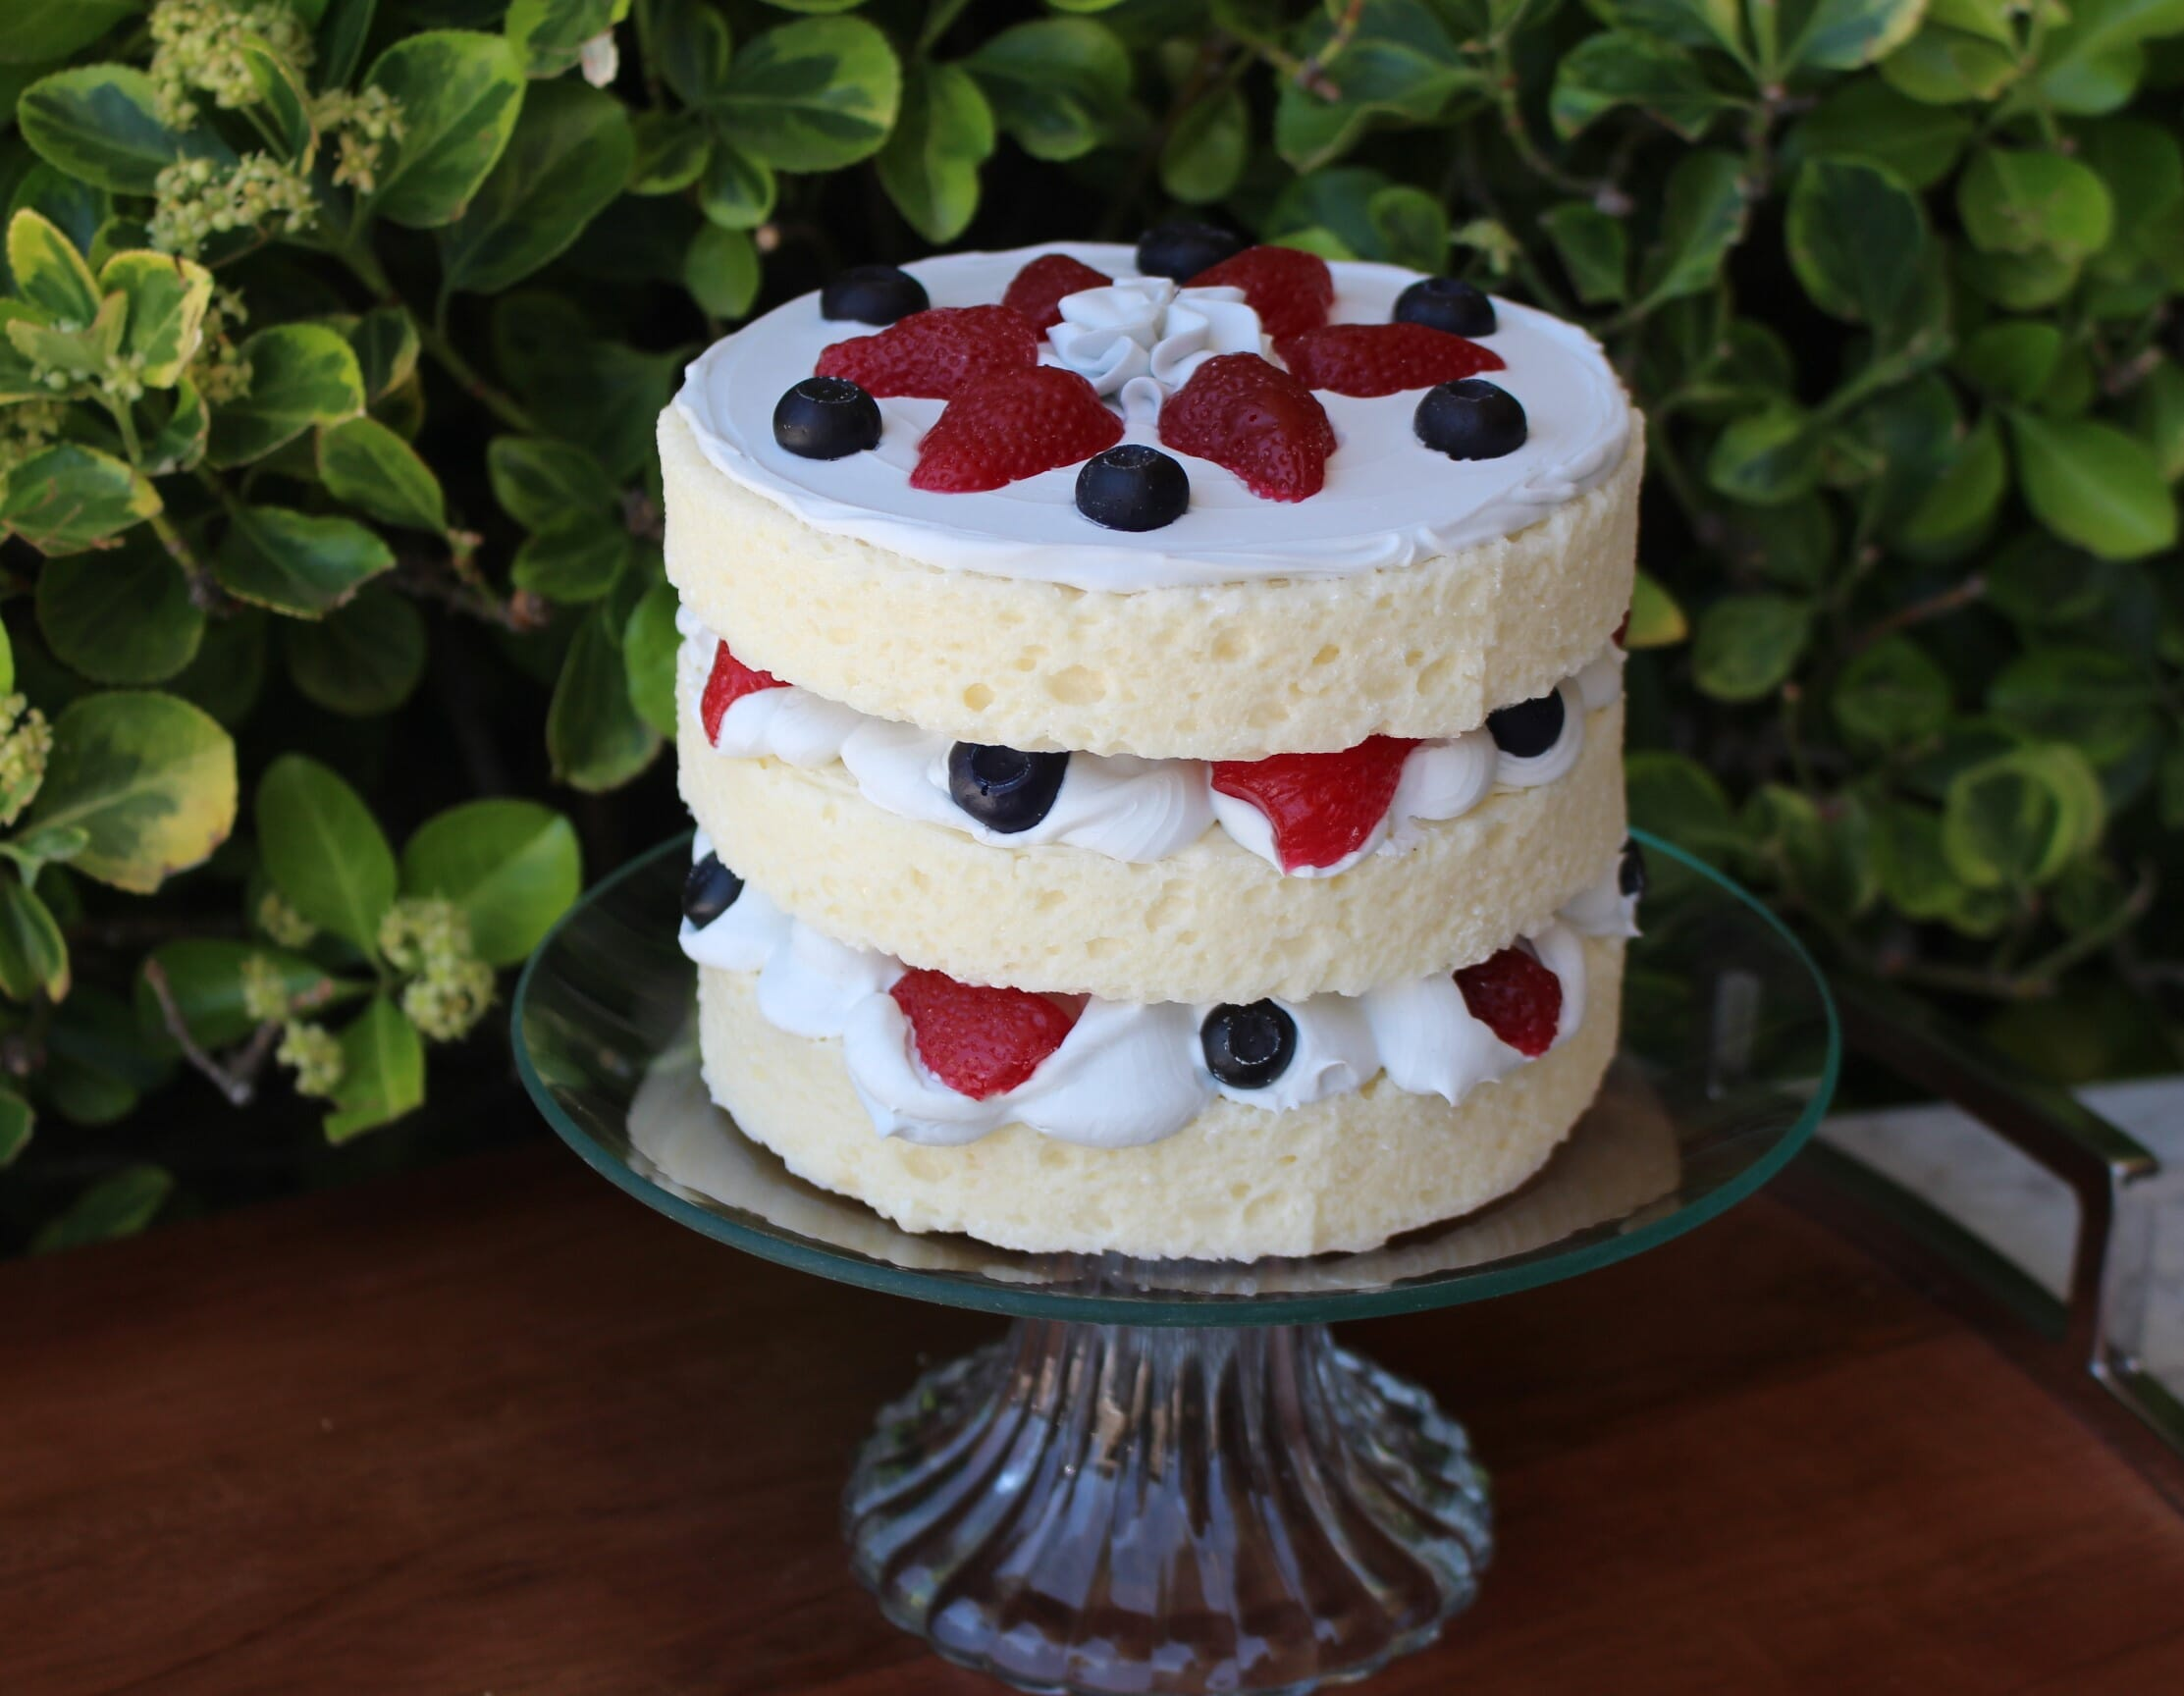 Fake Vanilla Frosted Layer Cake with Berries